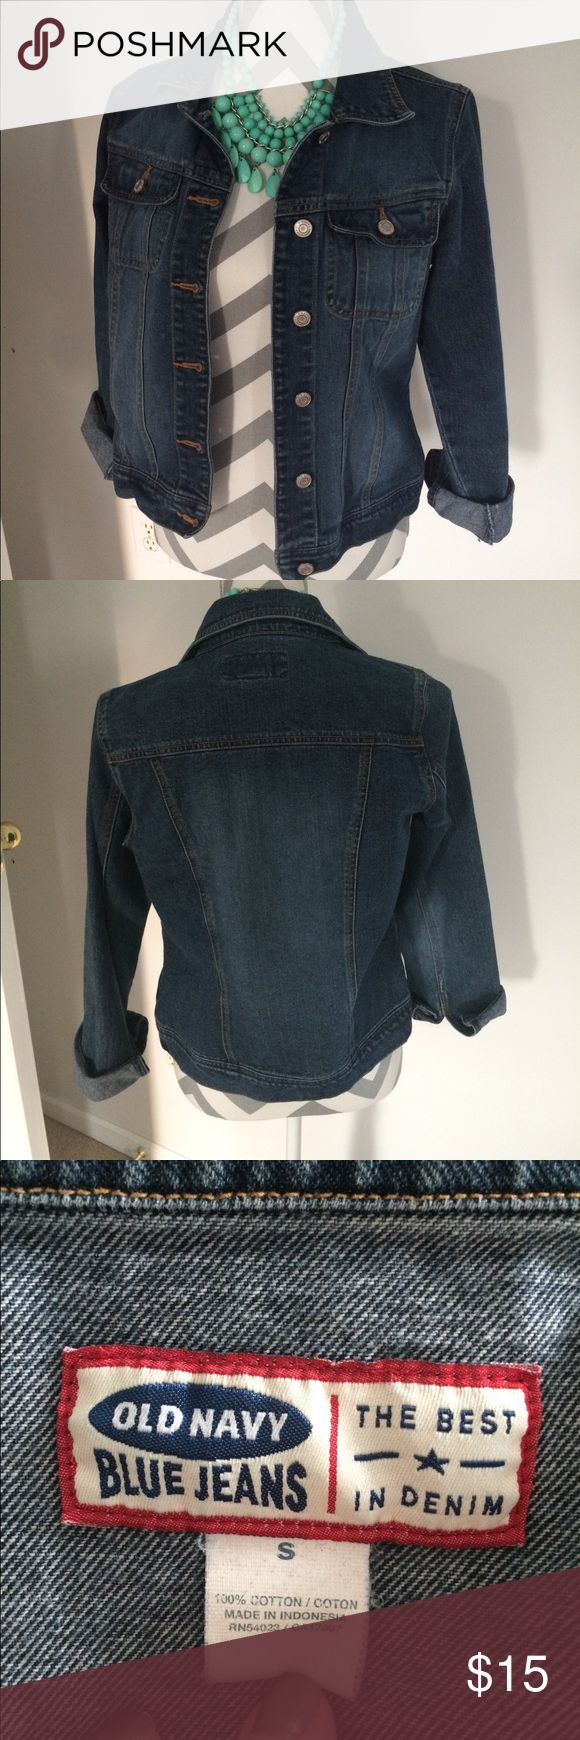 Old Navy Jean Jacket Reserved- EUC! Only worn a few times. Don't let the size fool you, I am usually a medium/large and this fits me. Perfect to throw on and go! No flaws. Offers welcome! Old Navy Jackets & Coats Jean Jackets